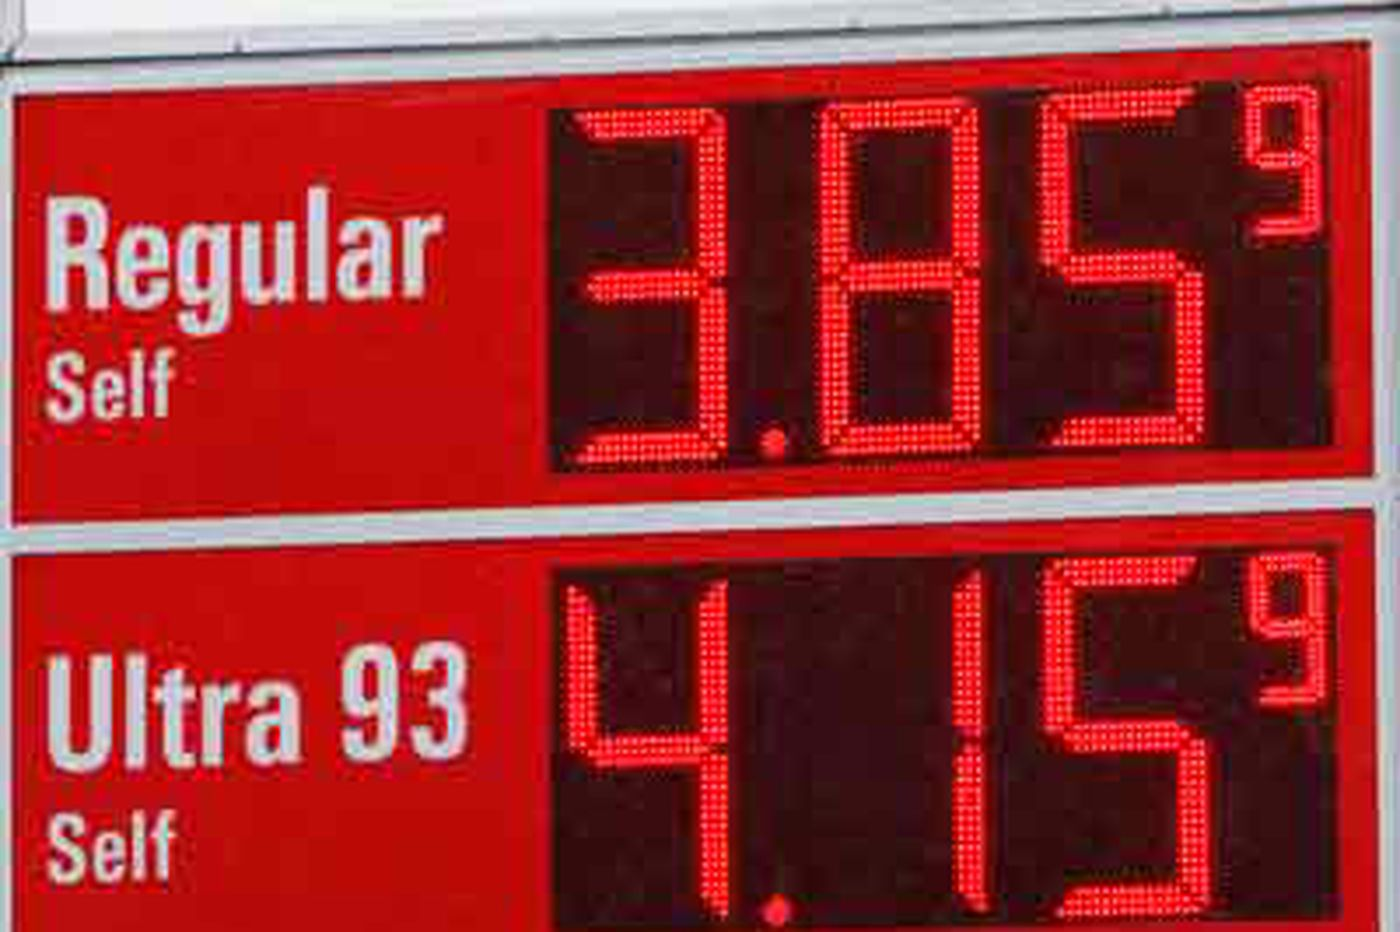 Jeff Gelles: Has speculation fueled the rise in gas prices?